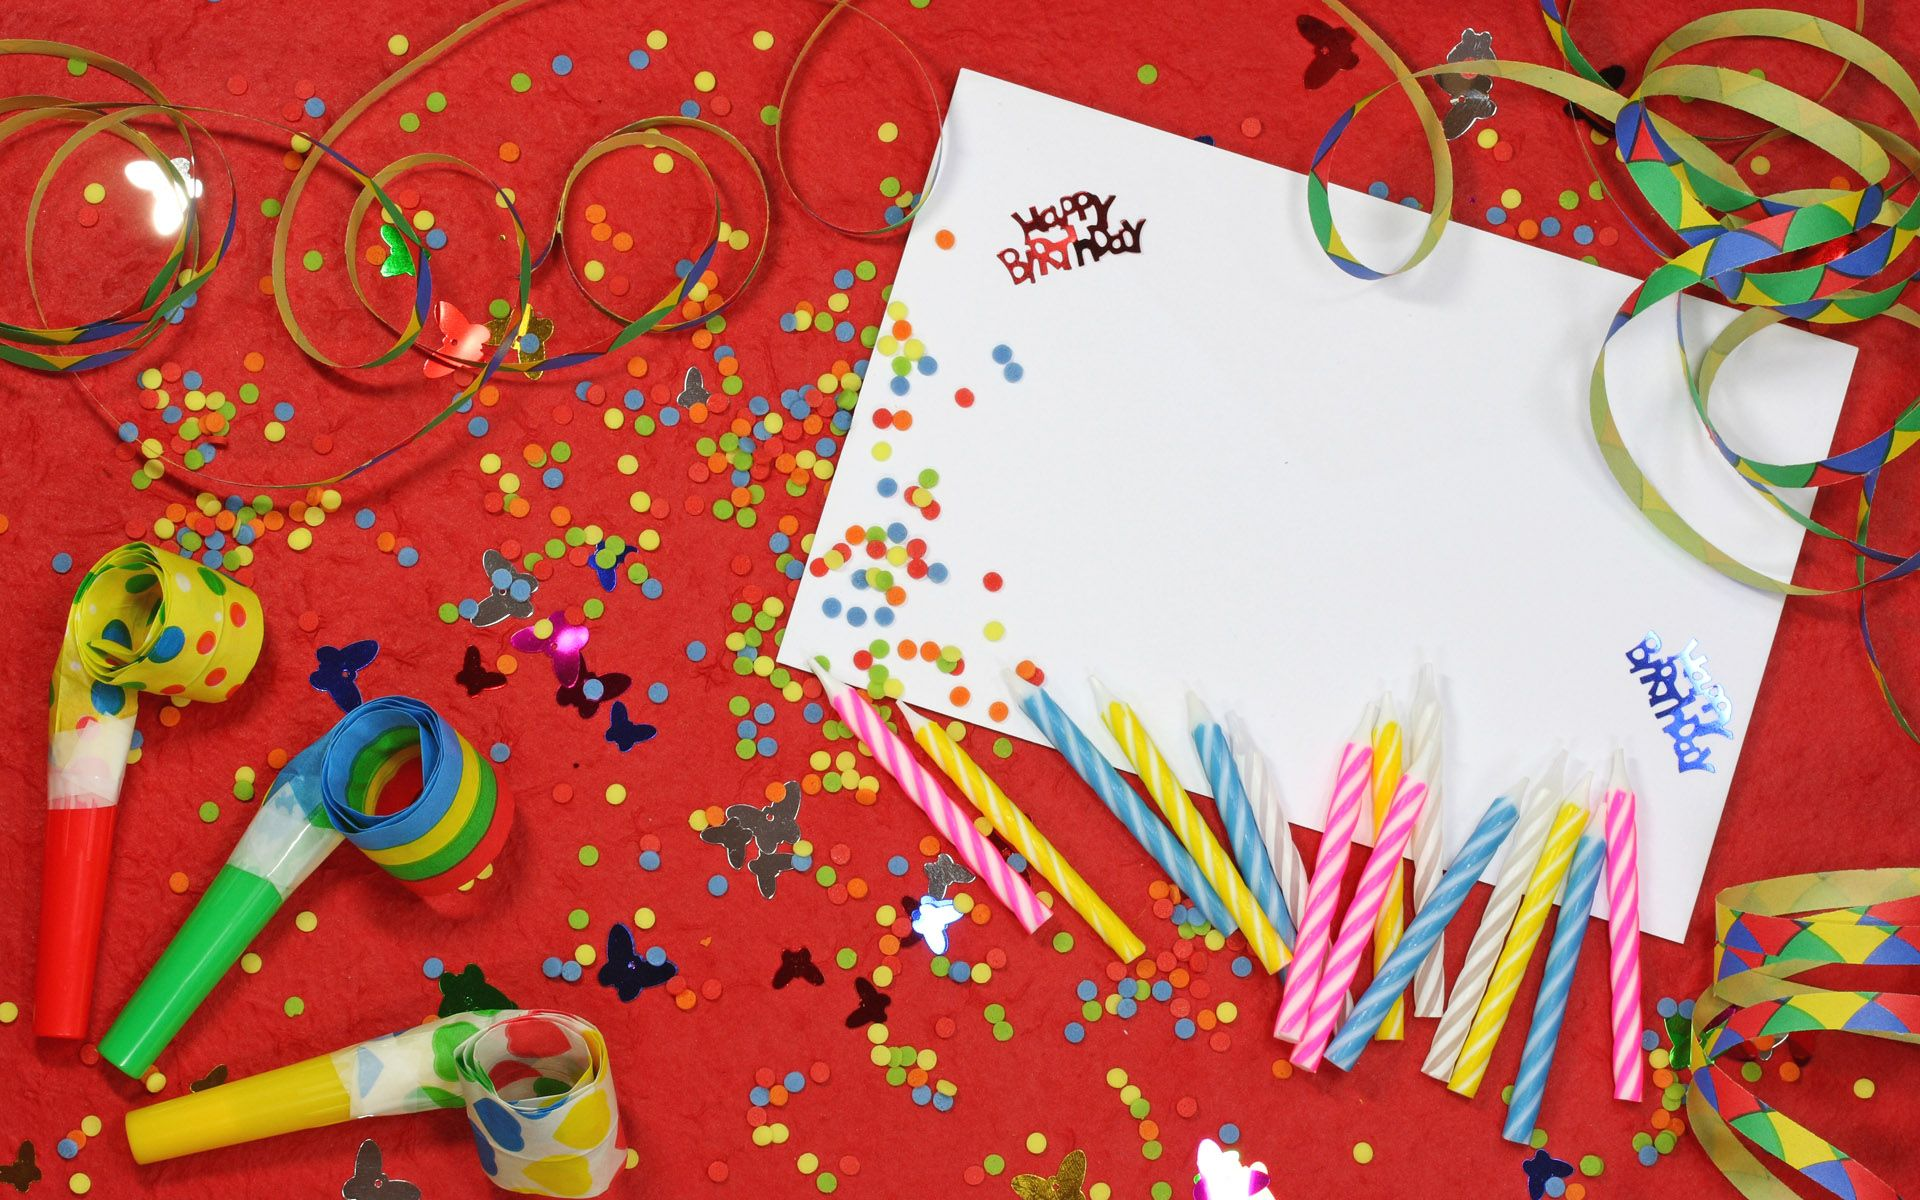 Free Birthday Cards | Description: Download Happy Birthday Card Party Best HD, Widescreen ...